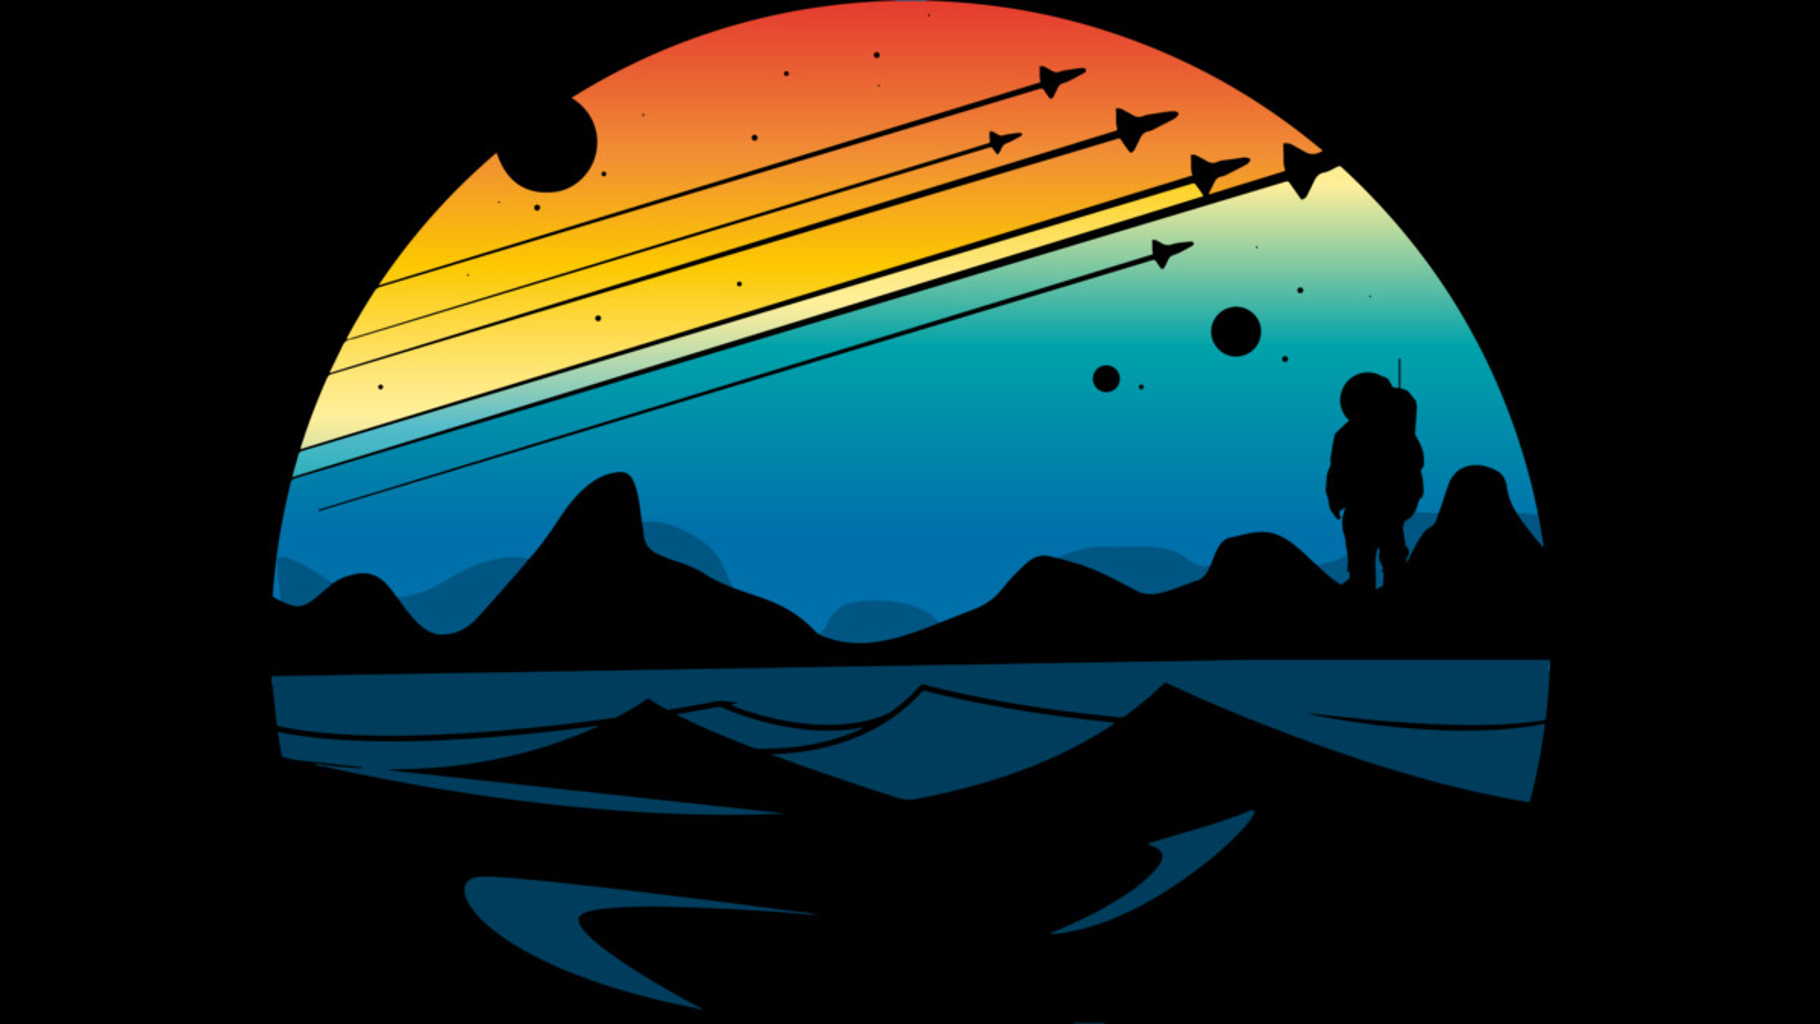 Design by Humans: Scenic colorful space view shuttle pilot science fiction art